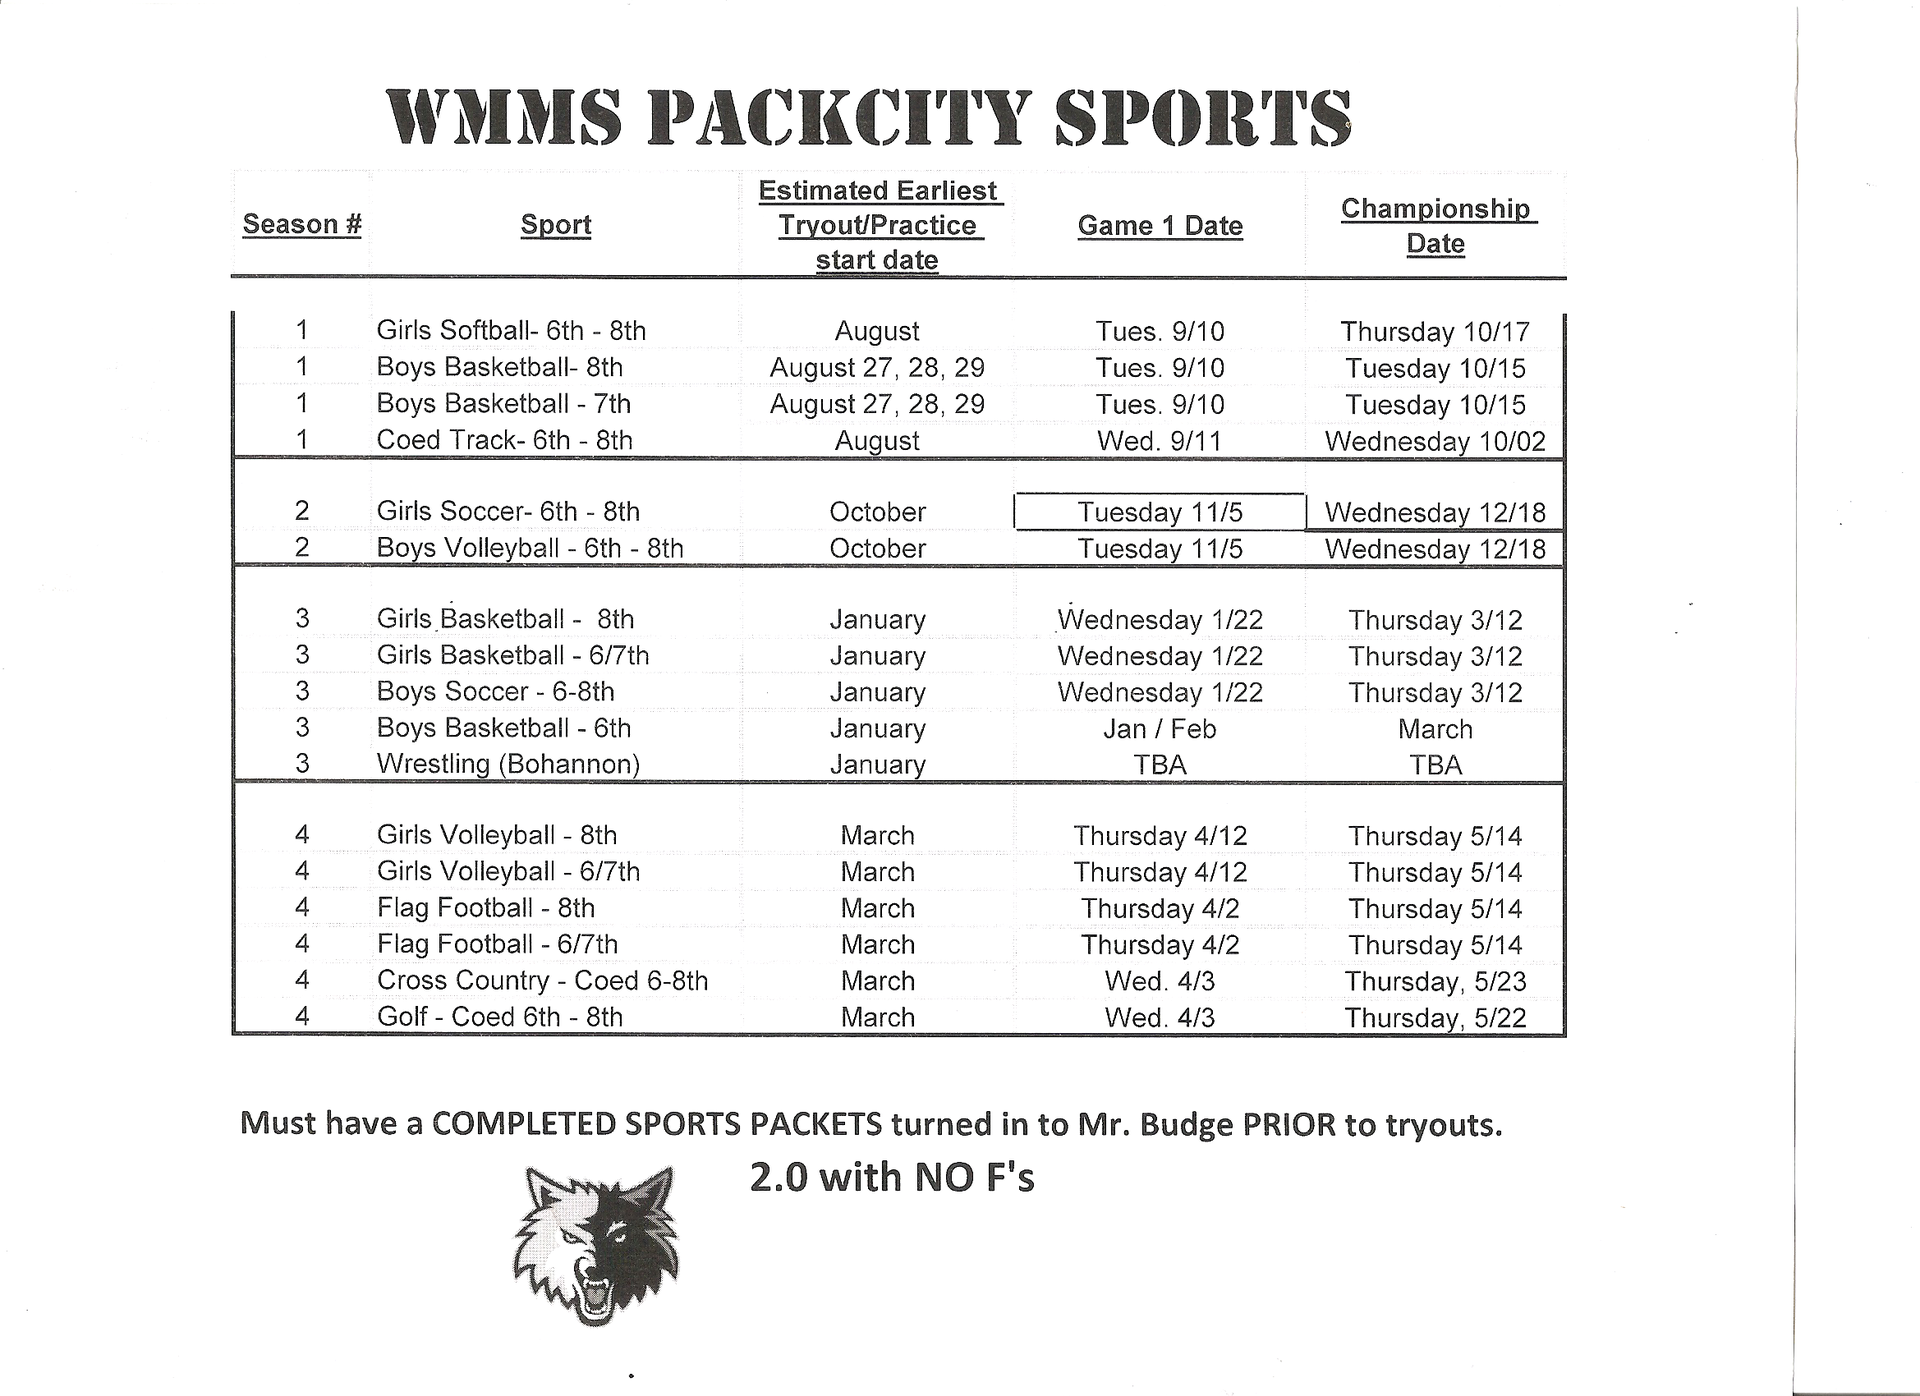 WMMS Pack City Sports